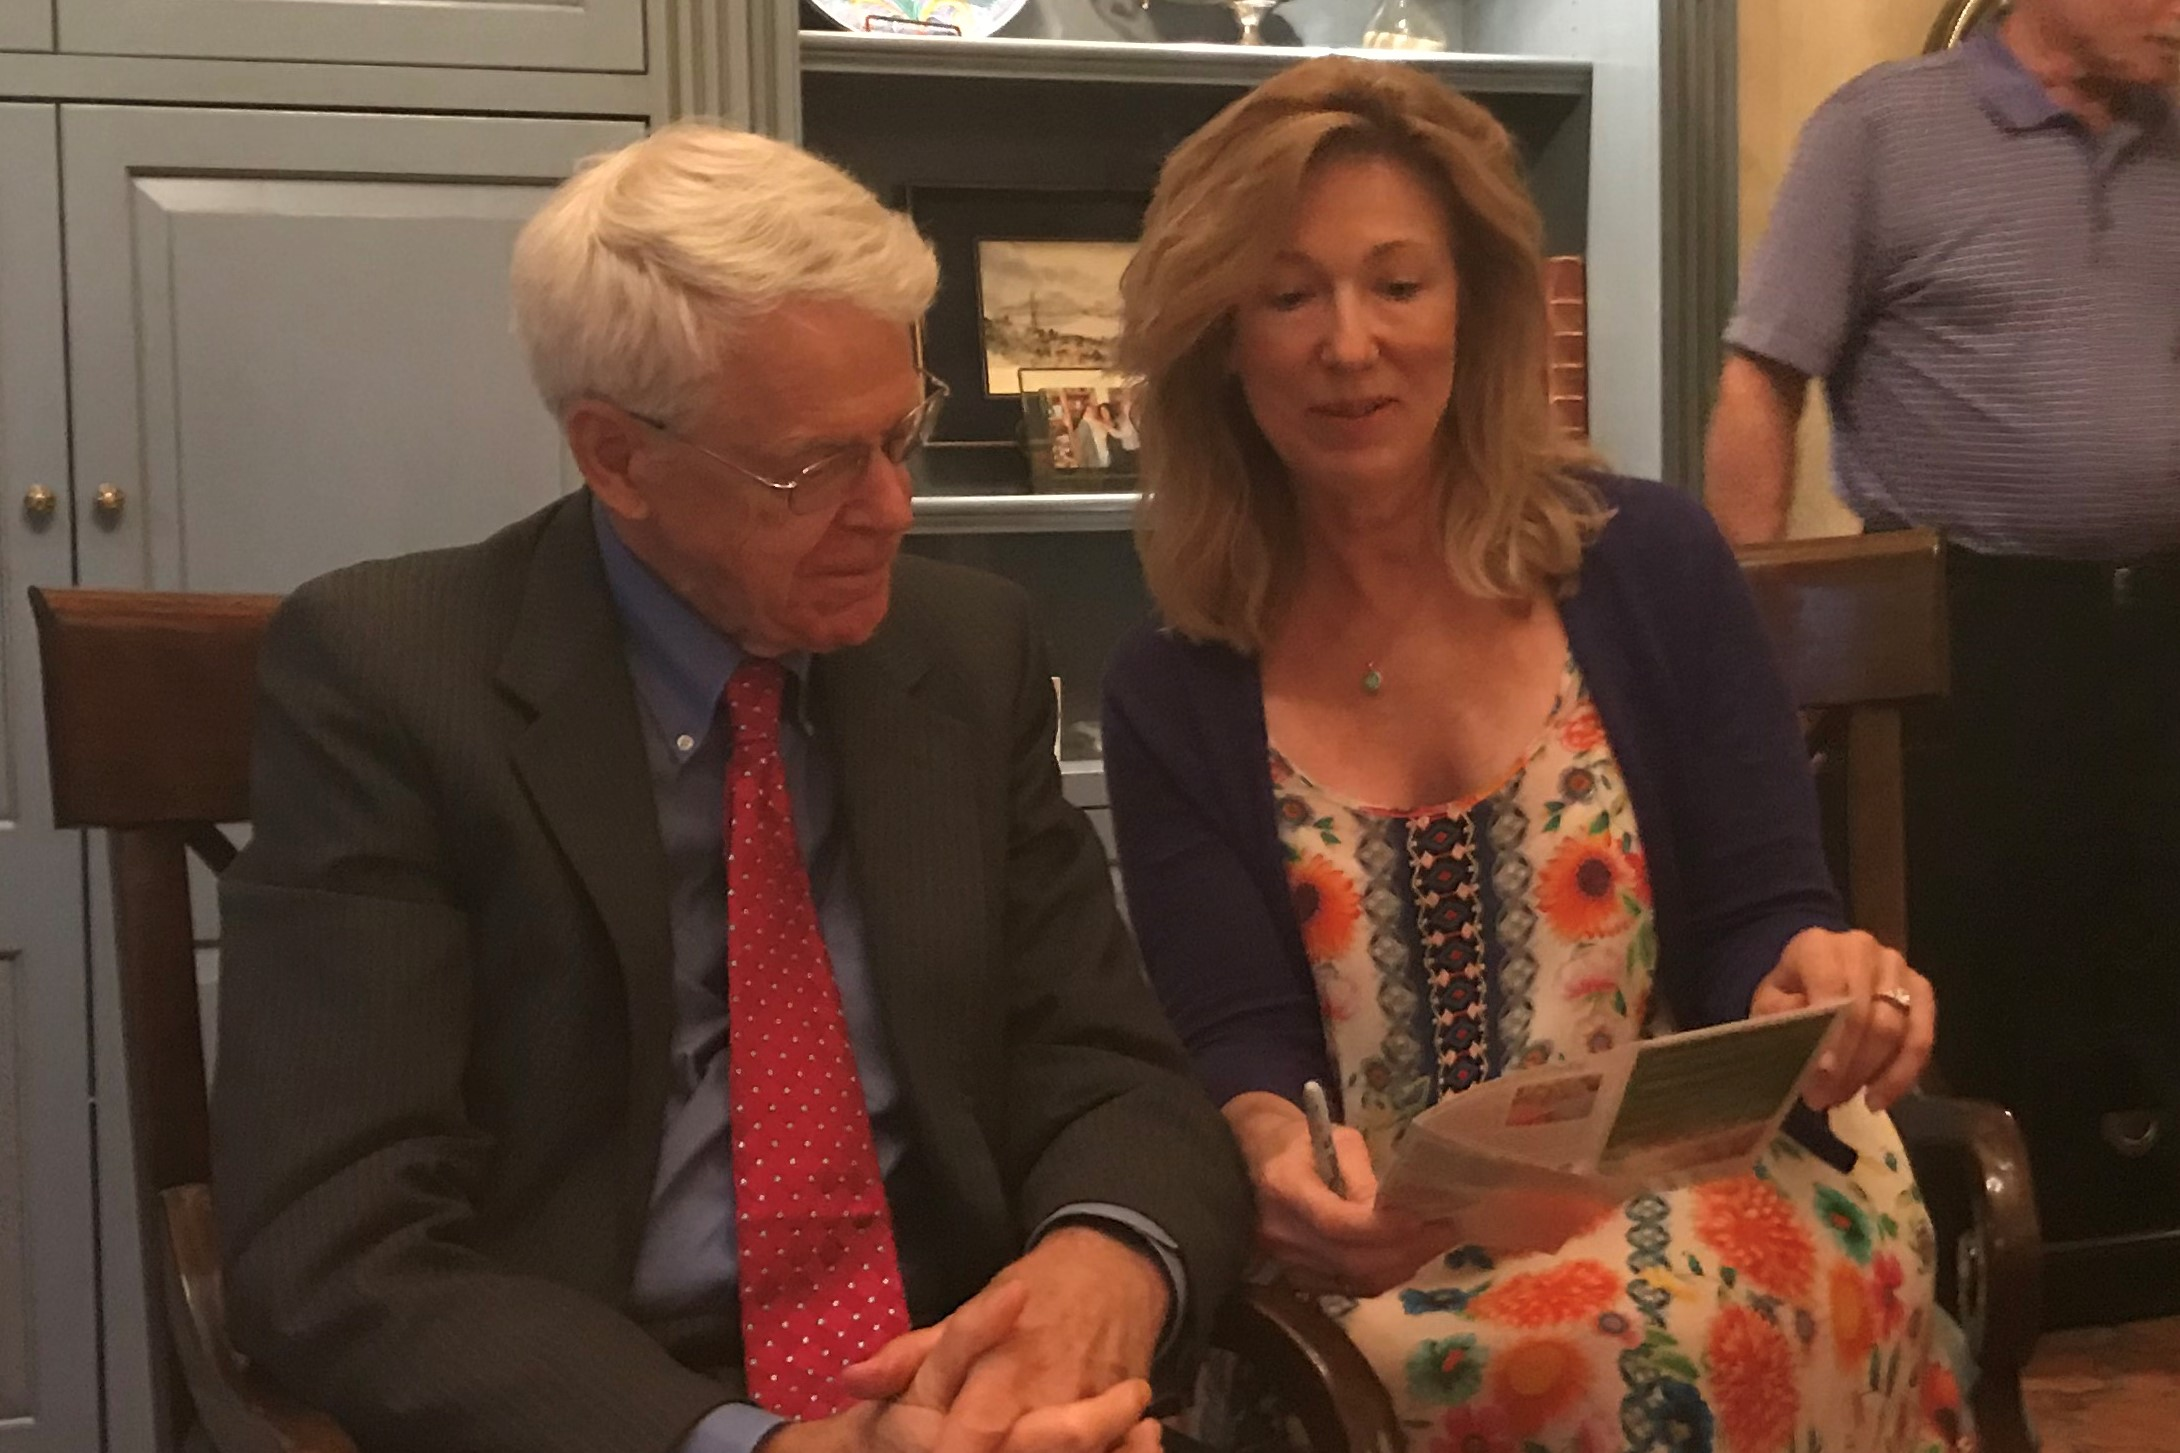 Fred_proudly_showing_Dr_Esselstyn_how_he_inspired_some_of_our_dishes.jpg